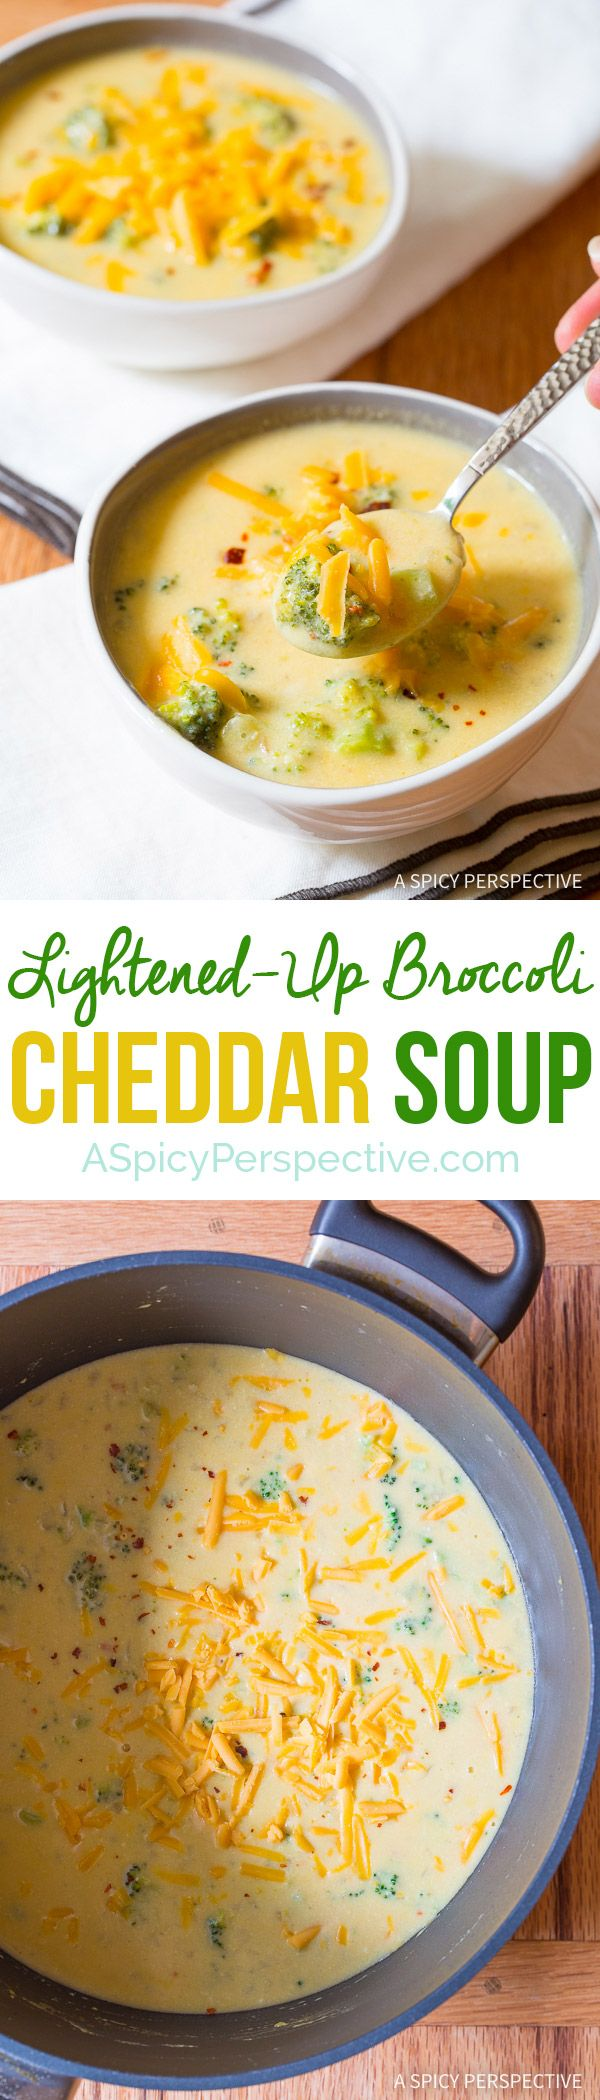 Got to Make this Lightened-Up Broccoli Cheddar Soup Recipe on ASpicyPerspective.com - All of the flavor, none of the guilt!